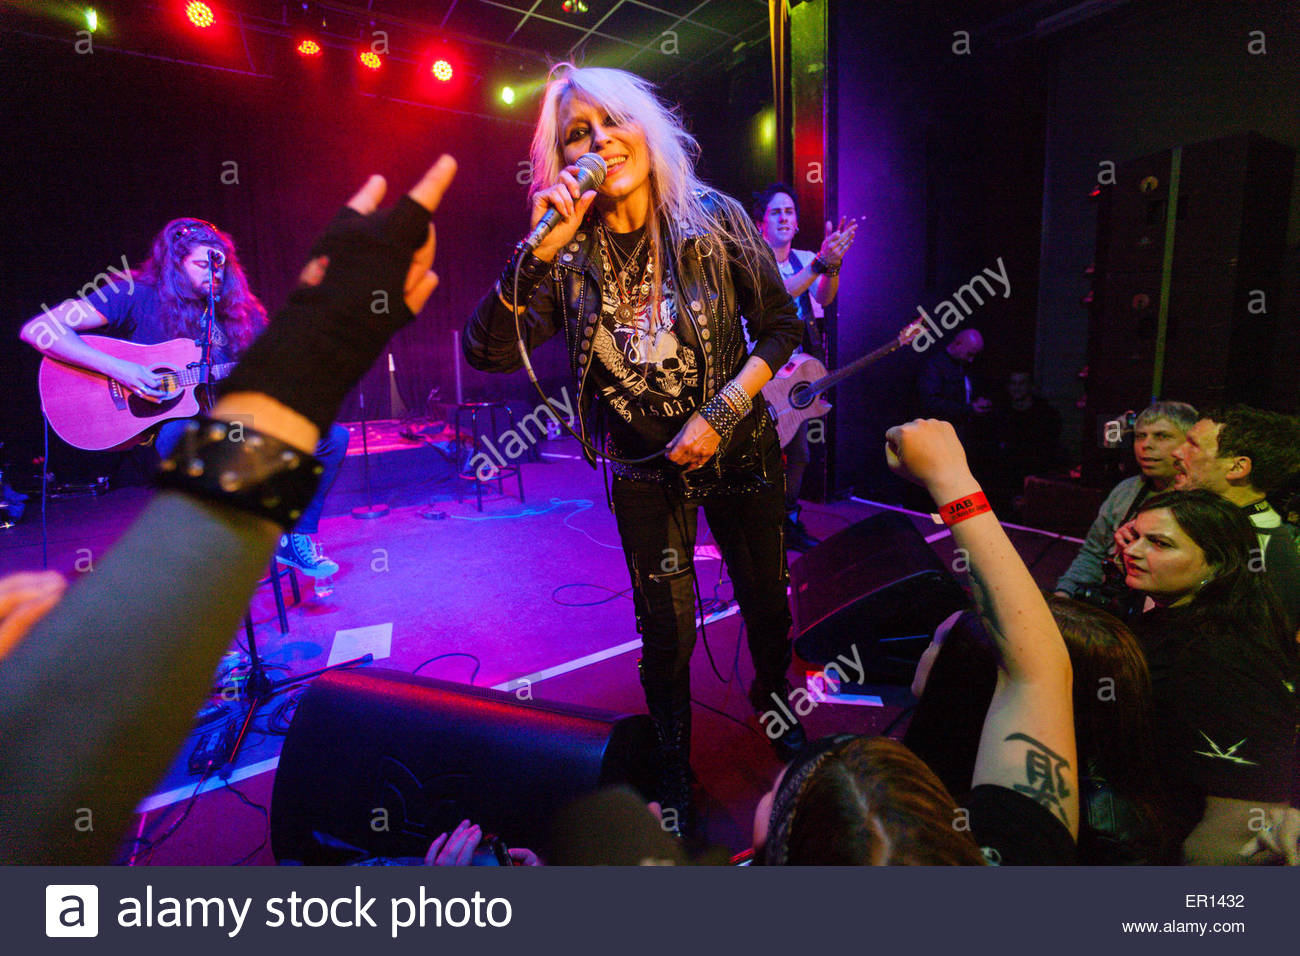 german rock singer Doro Pesch performs during an unplugged club concert - Stock Image